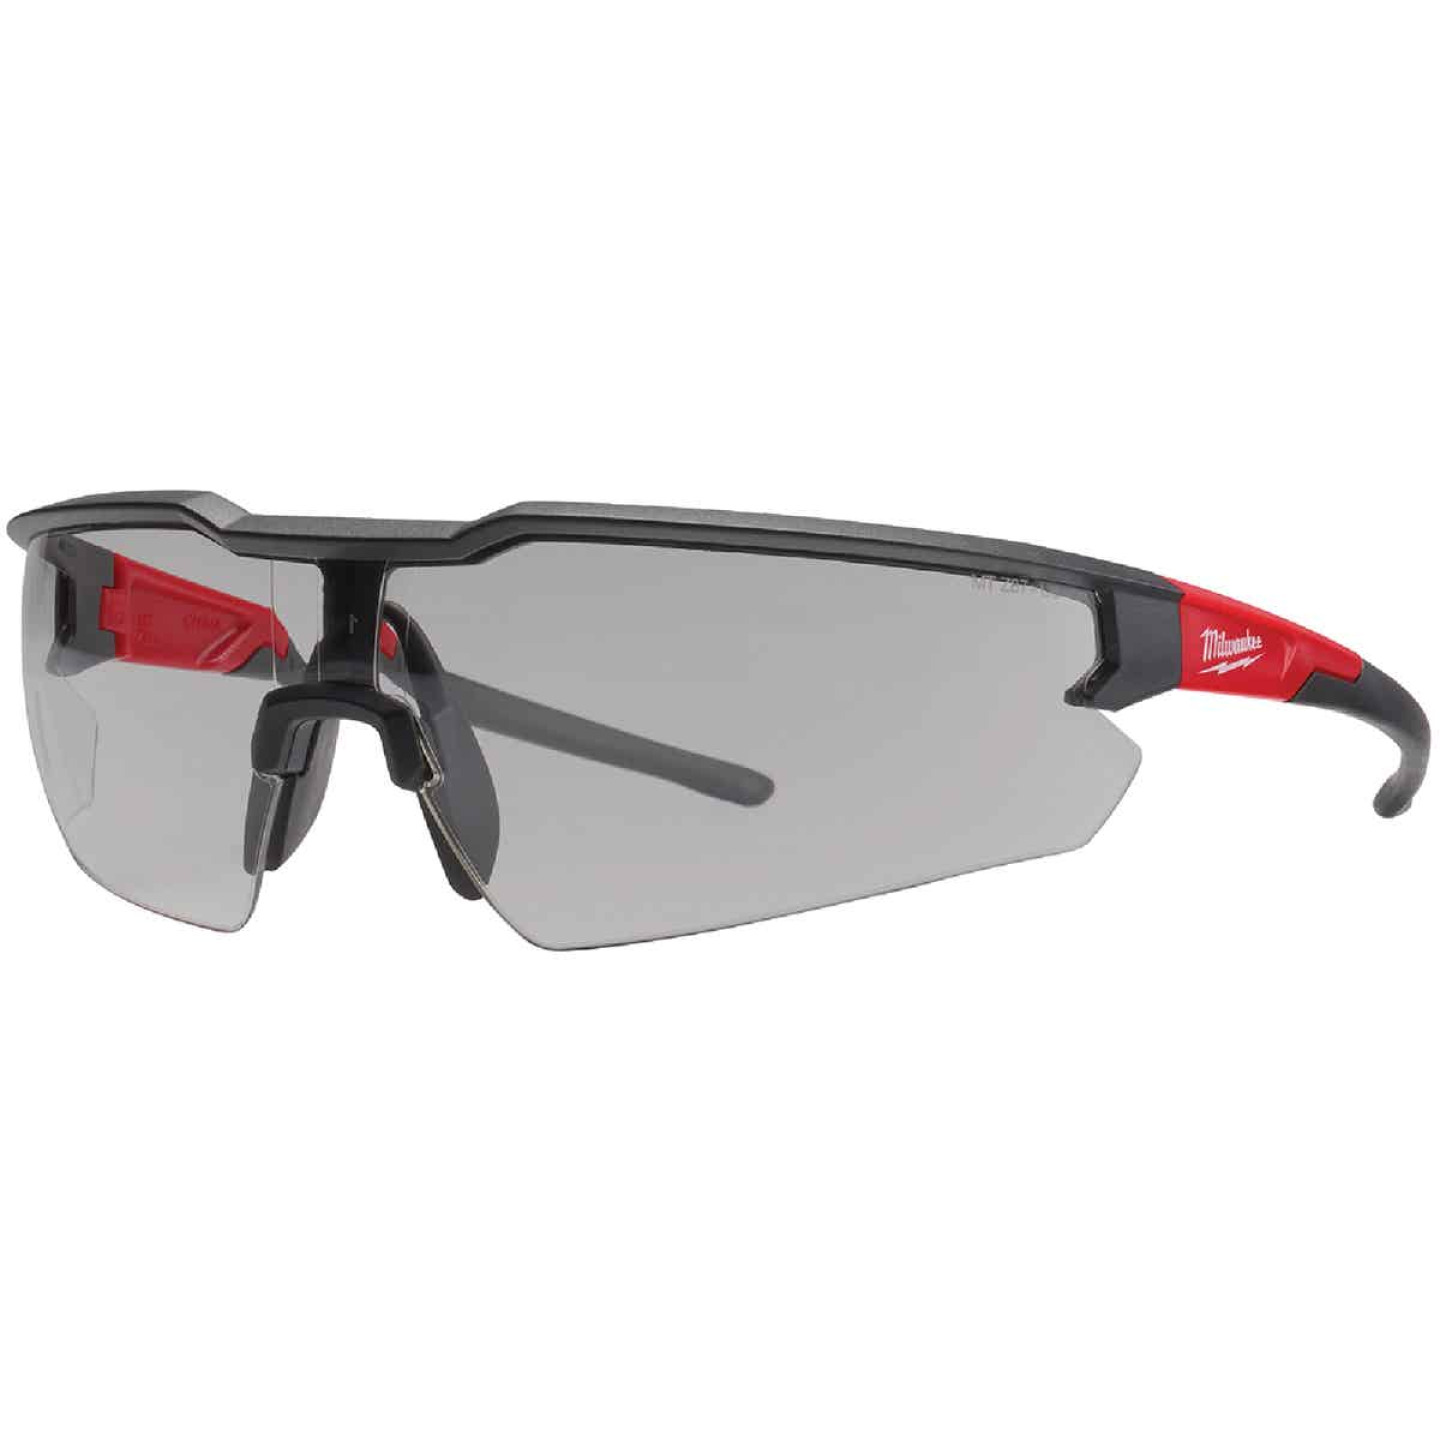 Milwaukee Red & Black Frame Safety Glasses with Gray Fog-Free Lenses Image 1